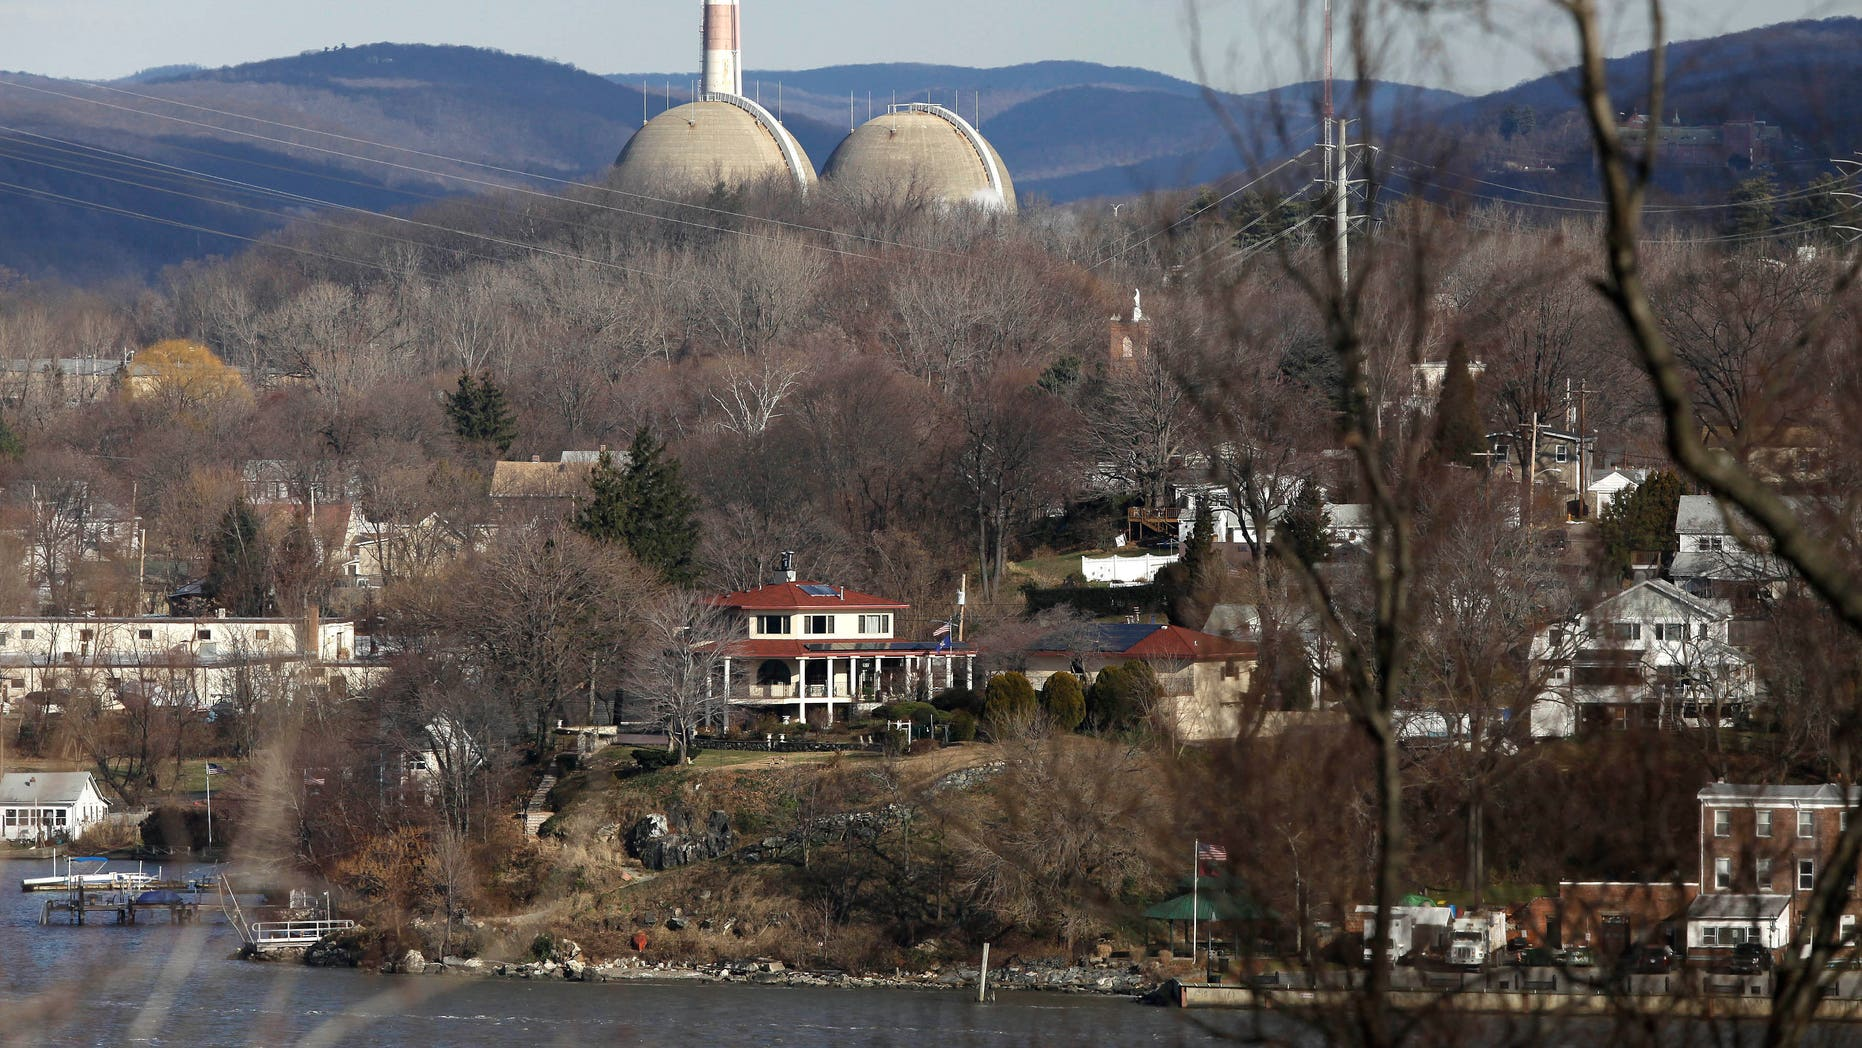 Reactor containment domes of the Indian Point nuclear reactor in Buchanan, N.Y.